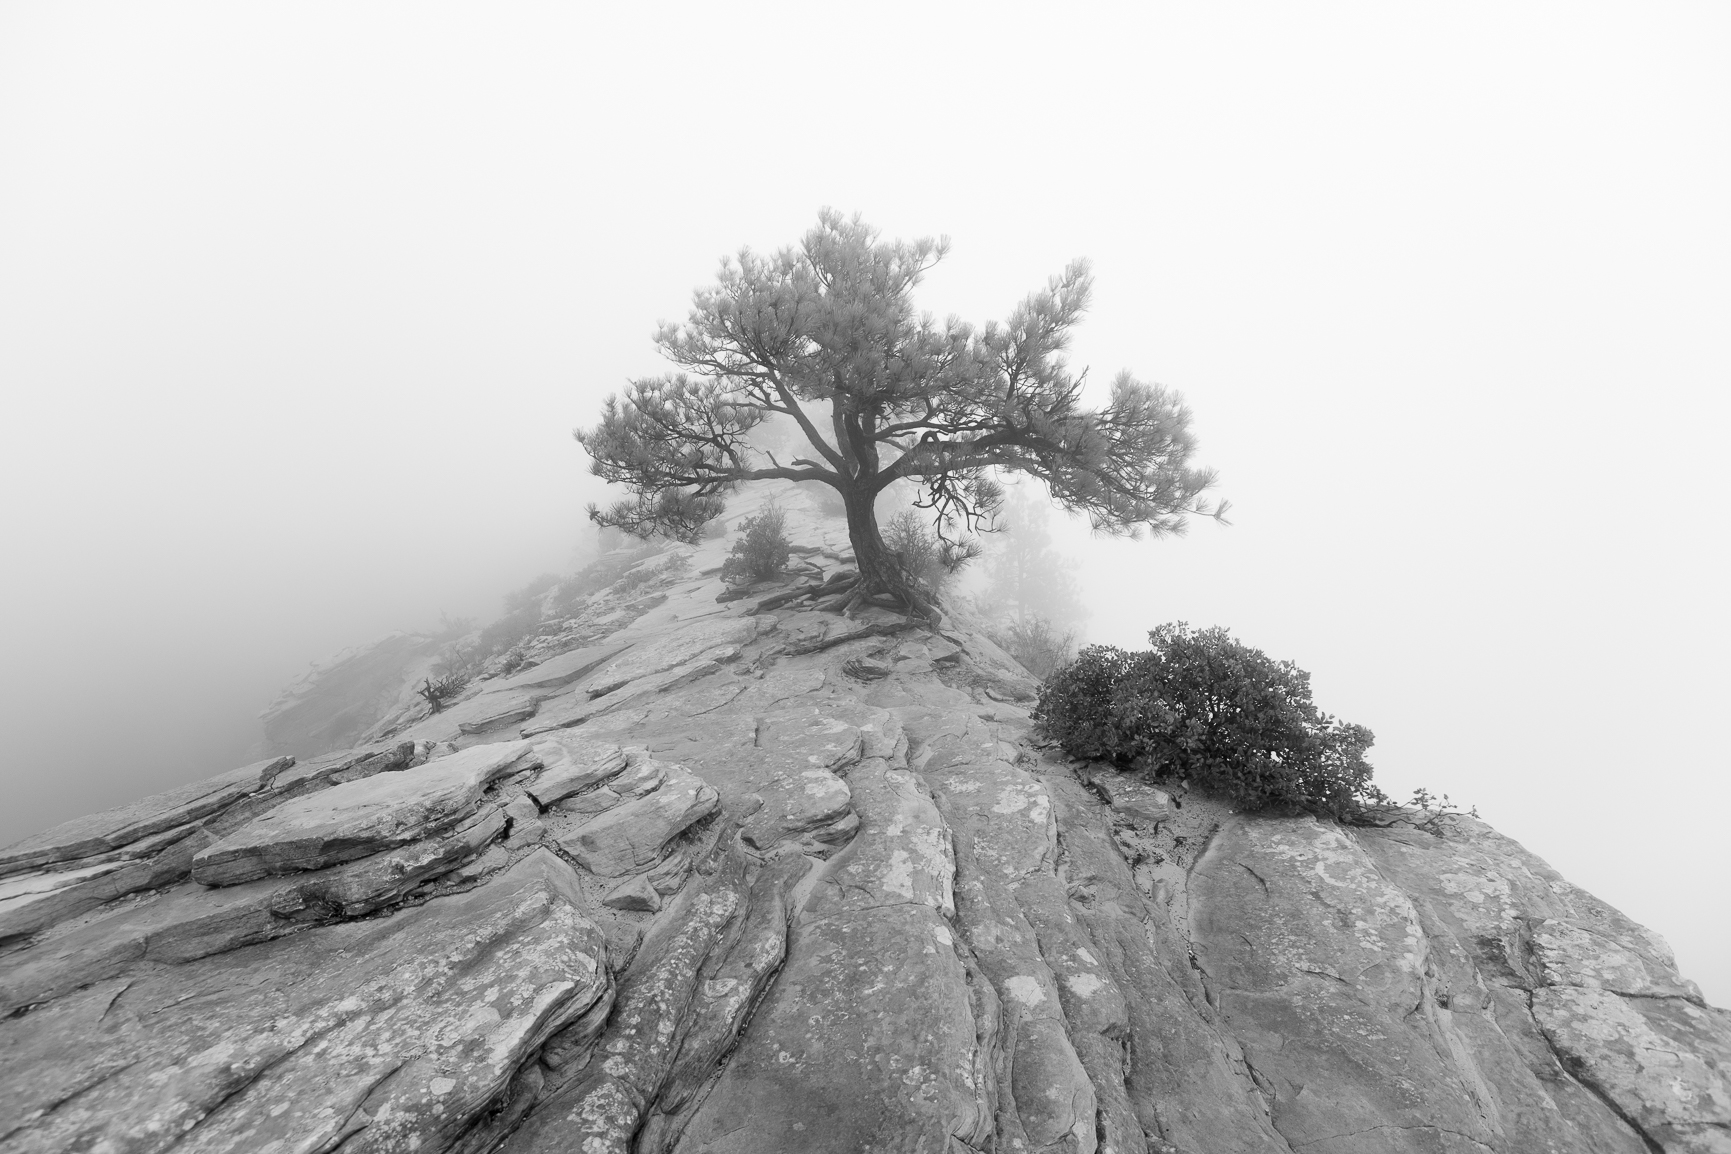 Tree in Zion Surrounded by Fog